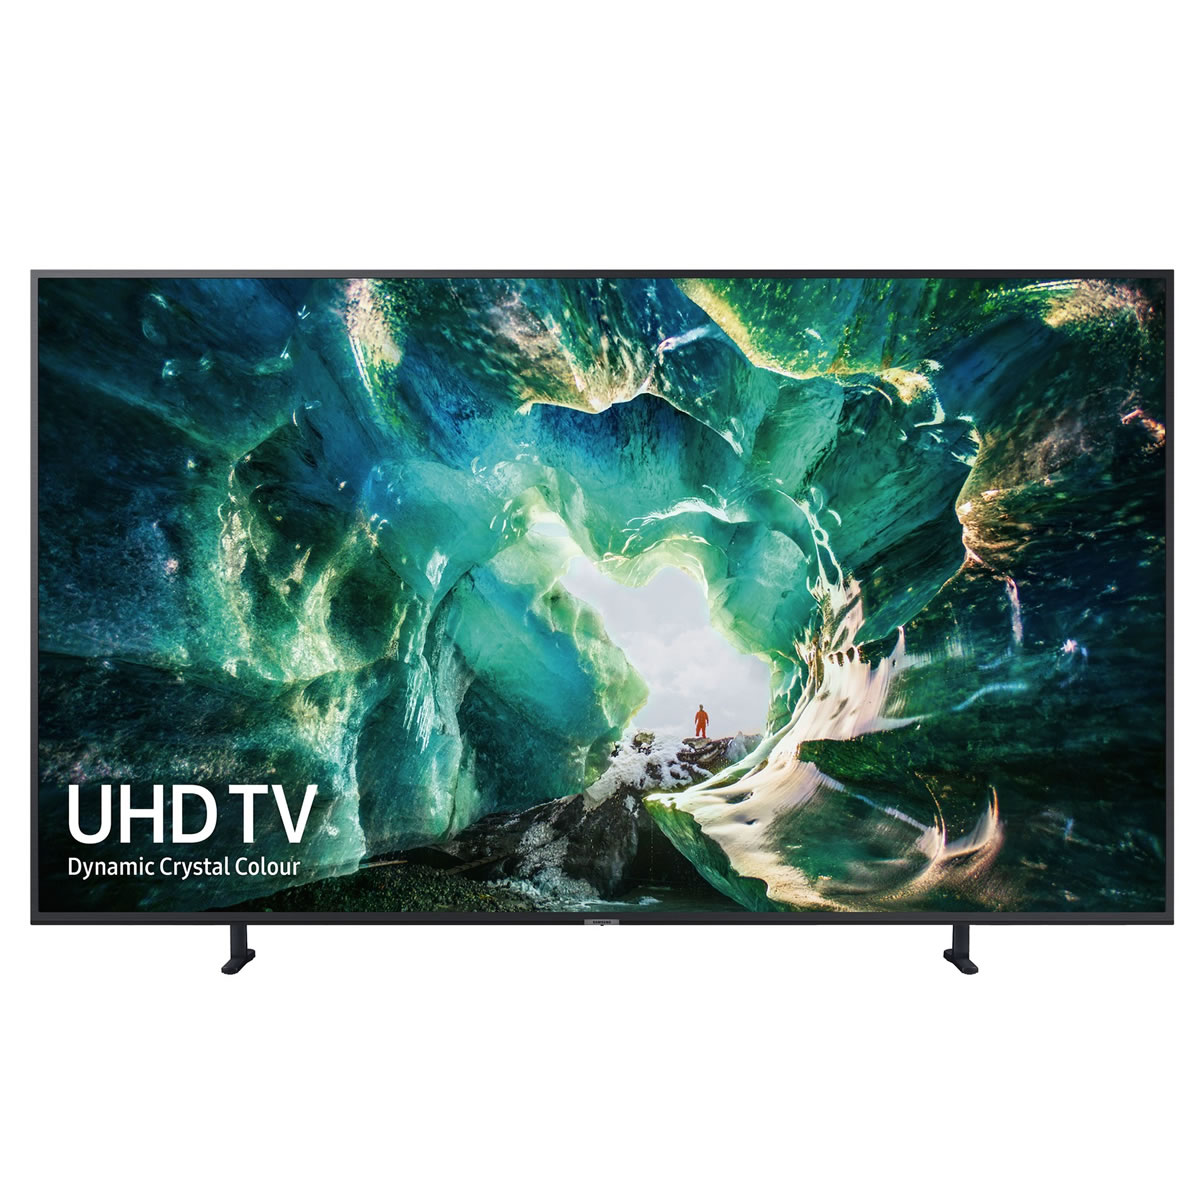 Image of 55inch UHD 4K LED SMART TV HDR Bixby TV Plus